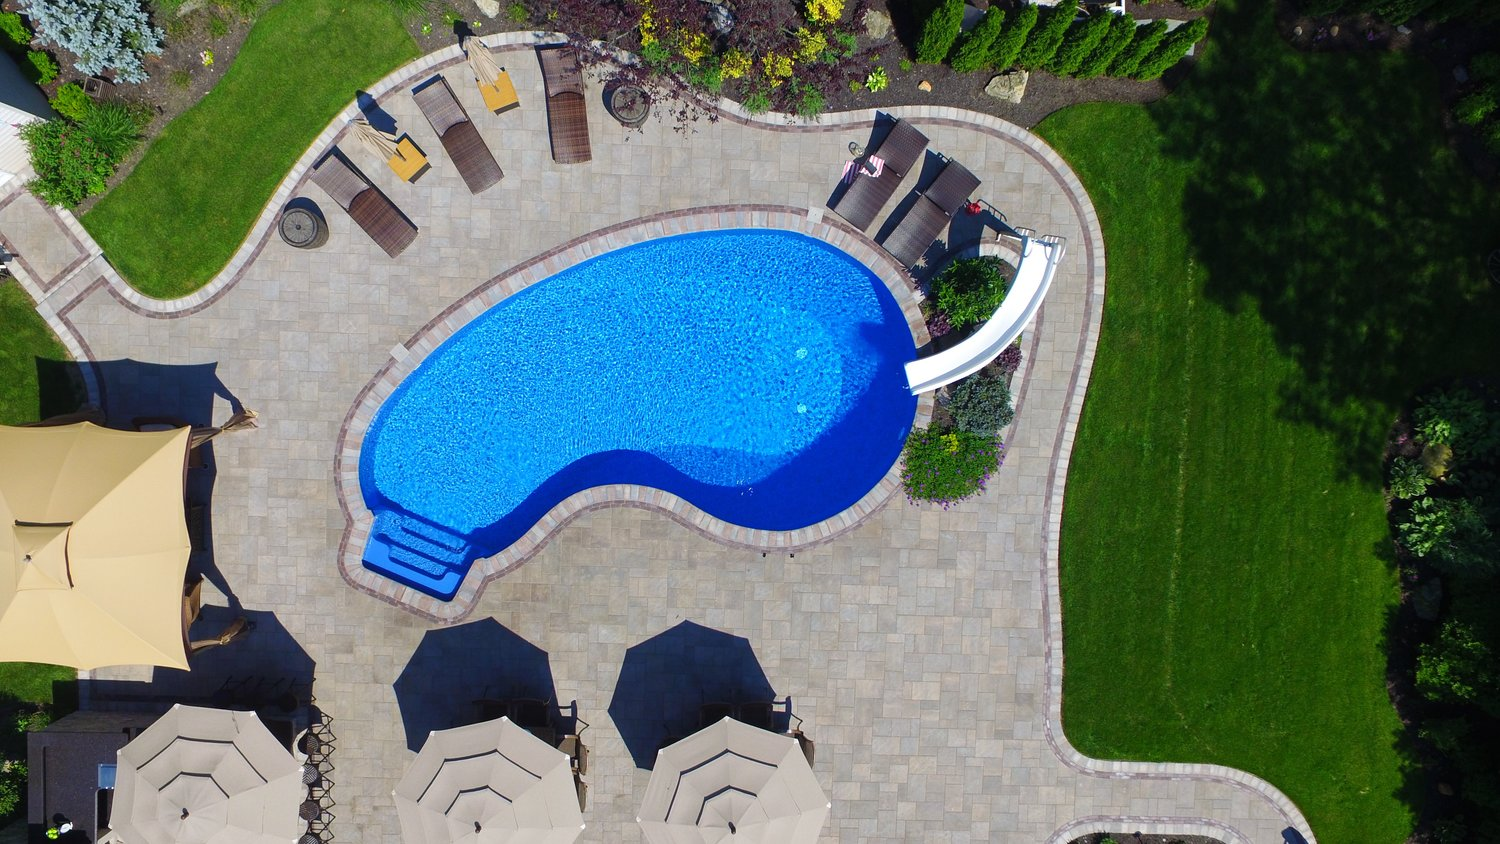 3 Designs For A Beach Style Pool Patio For Your Ny Backyard Above - Swimming-pool-patio-designs